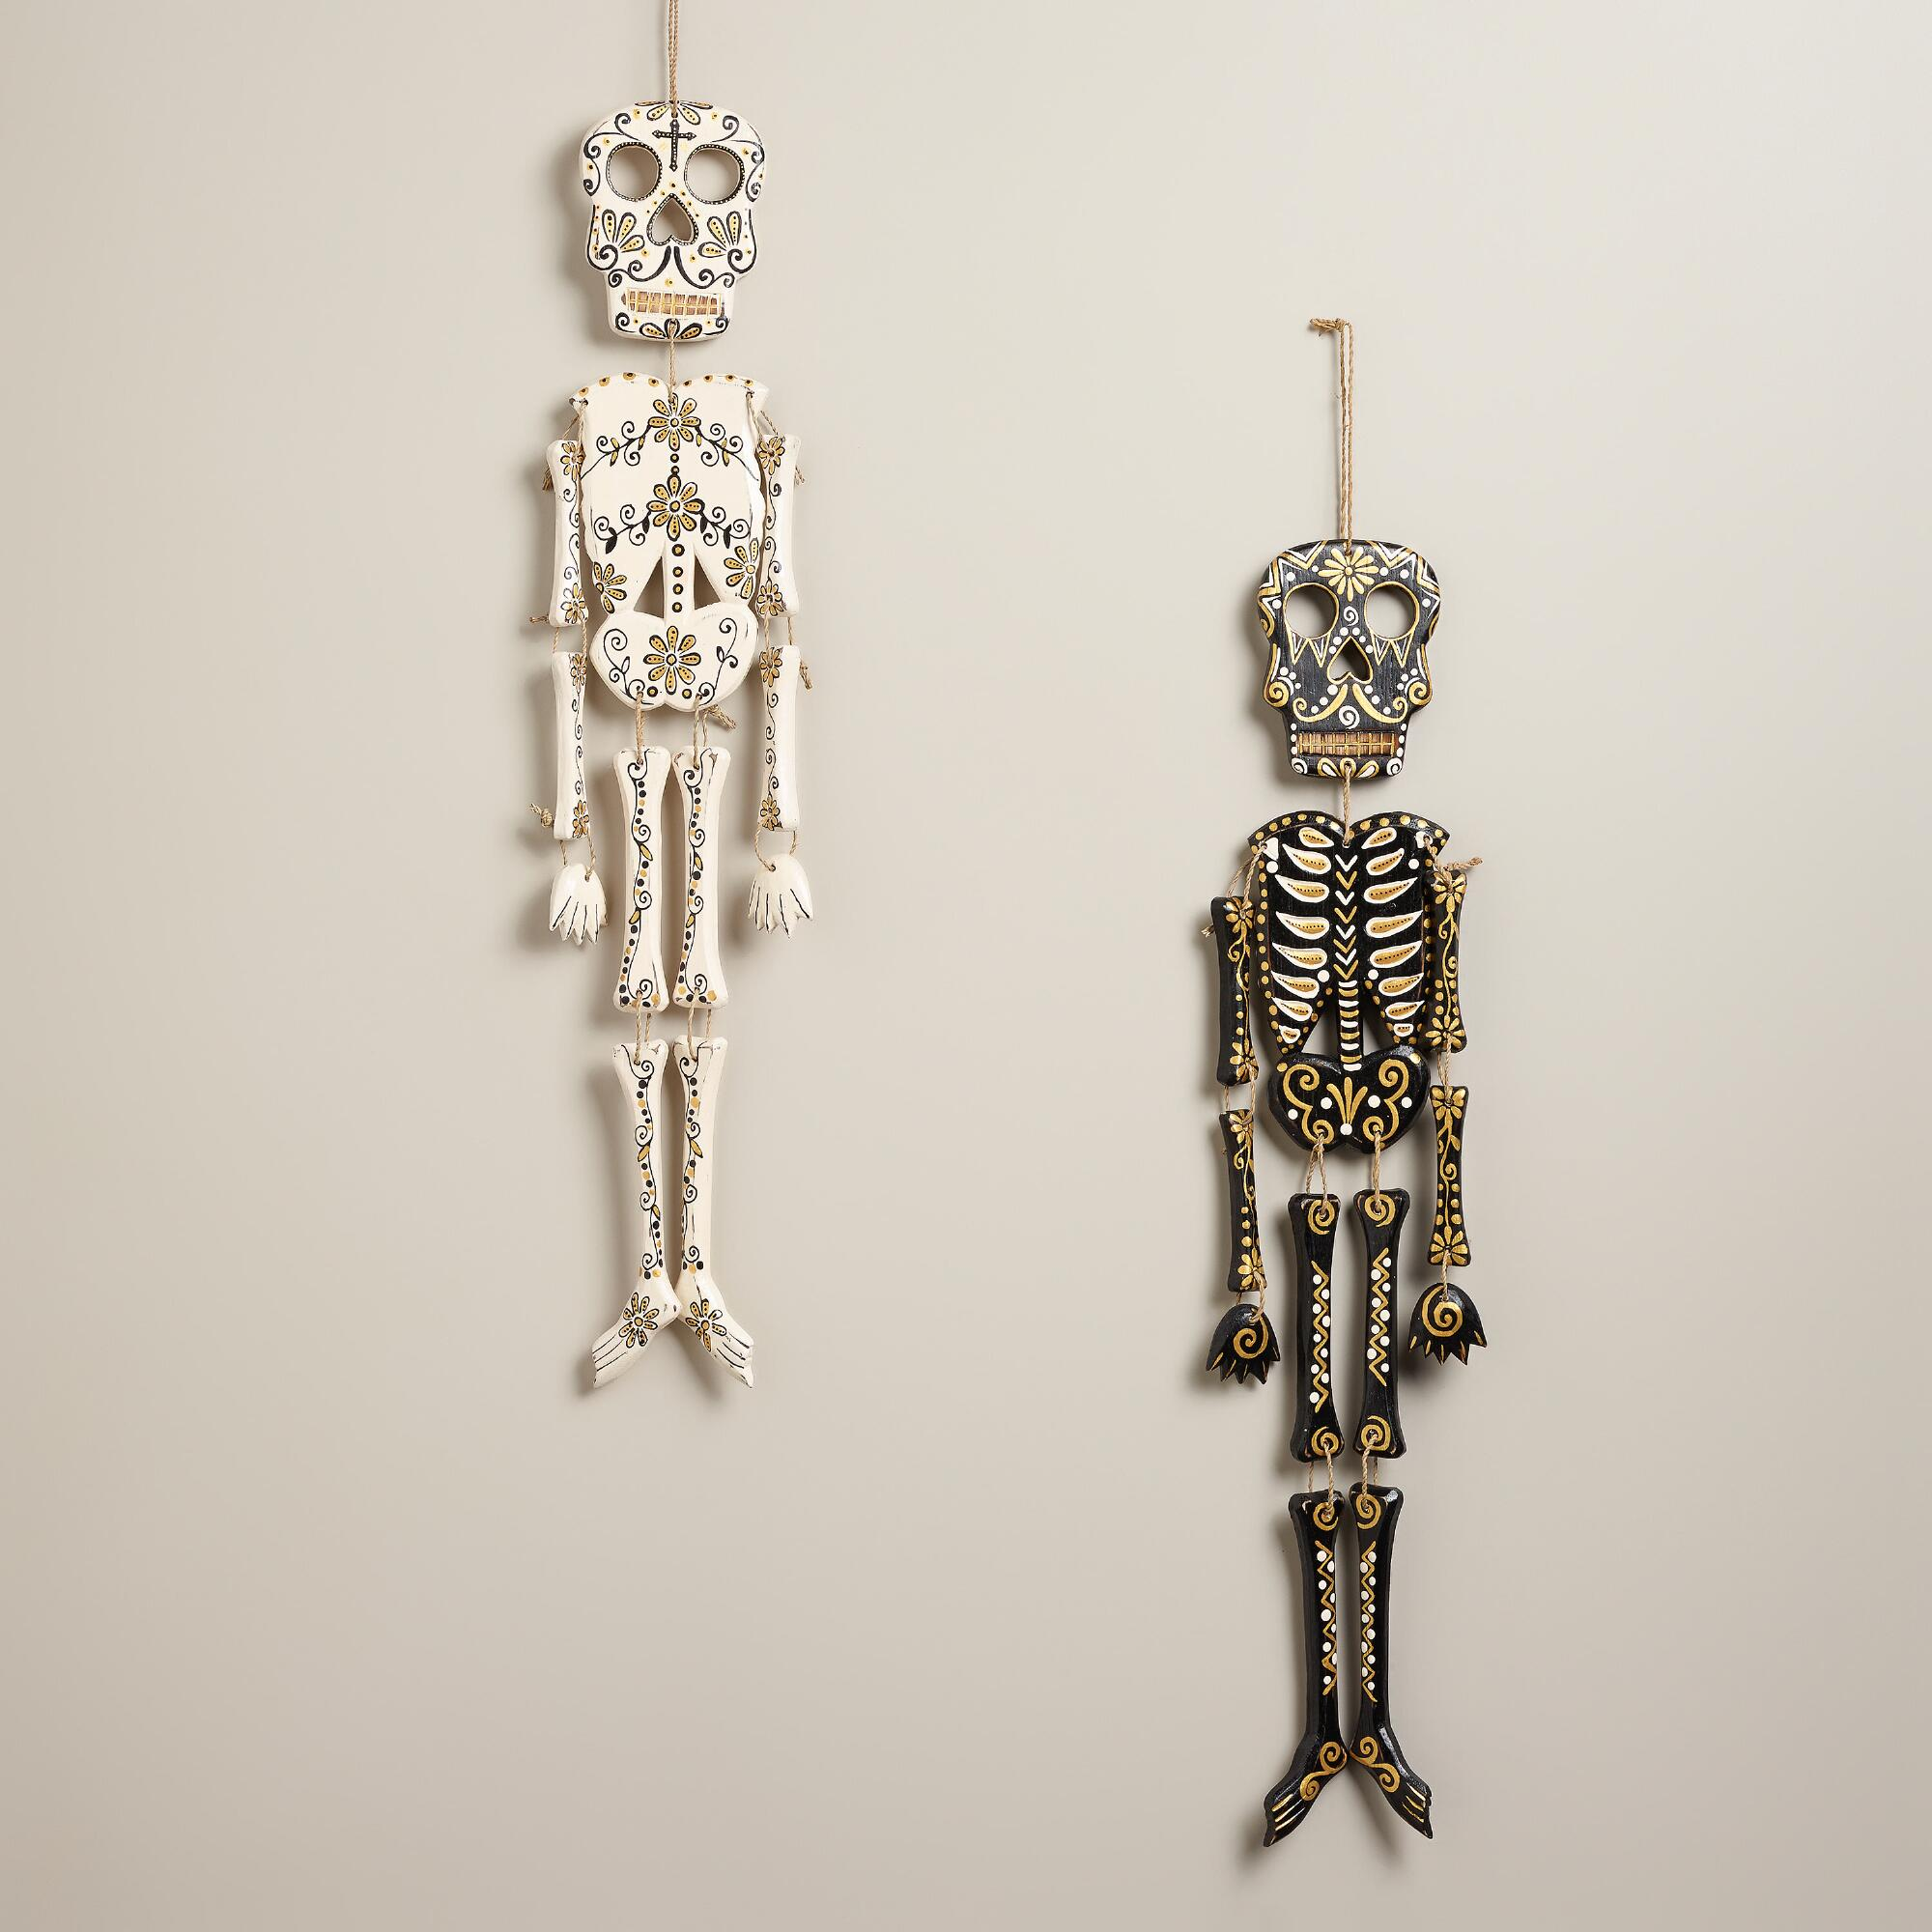 Wall Decor Sets Of 2 : Black and ivory wooden skeleton wall decor set of